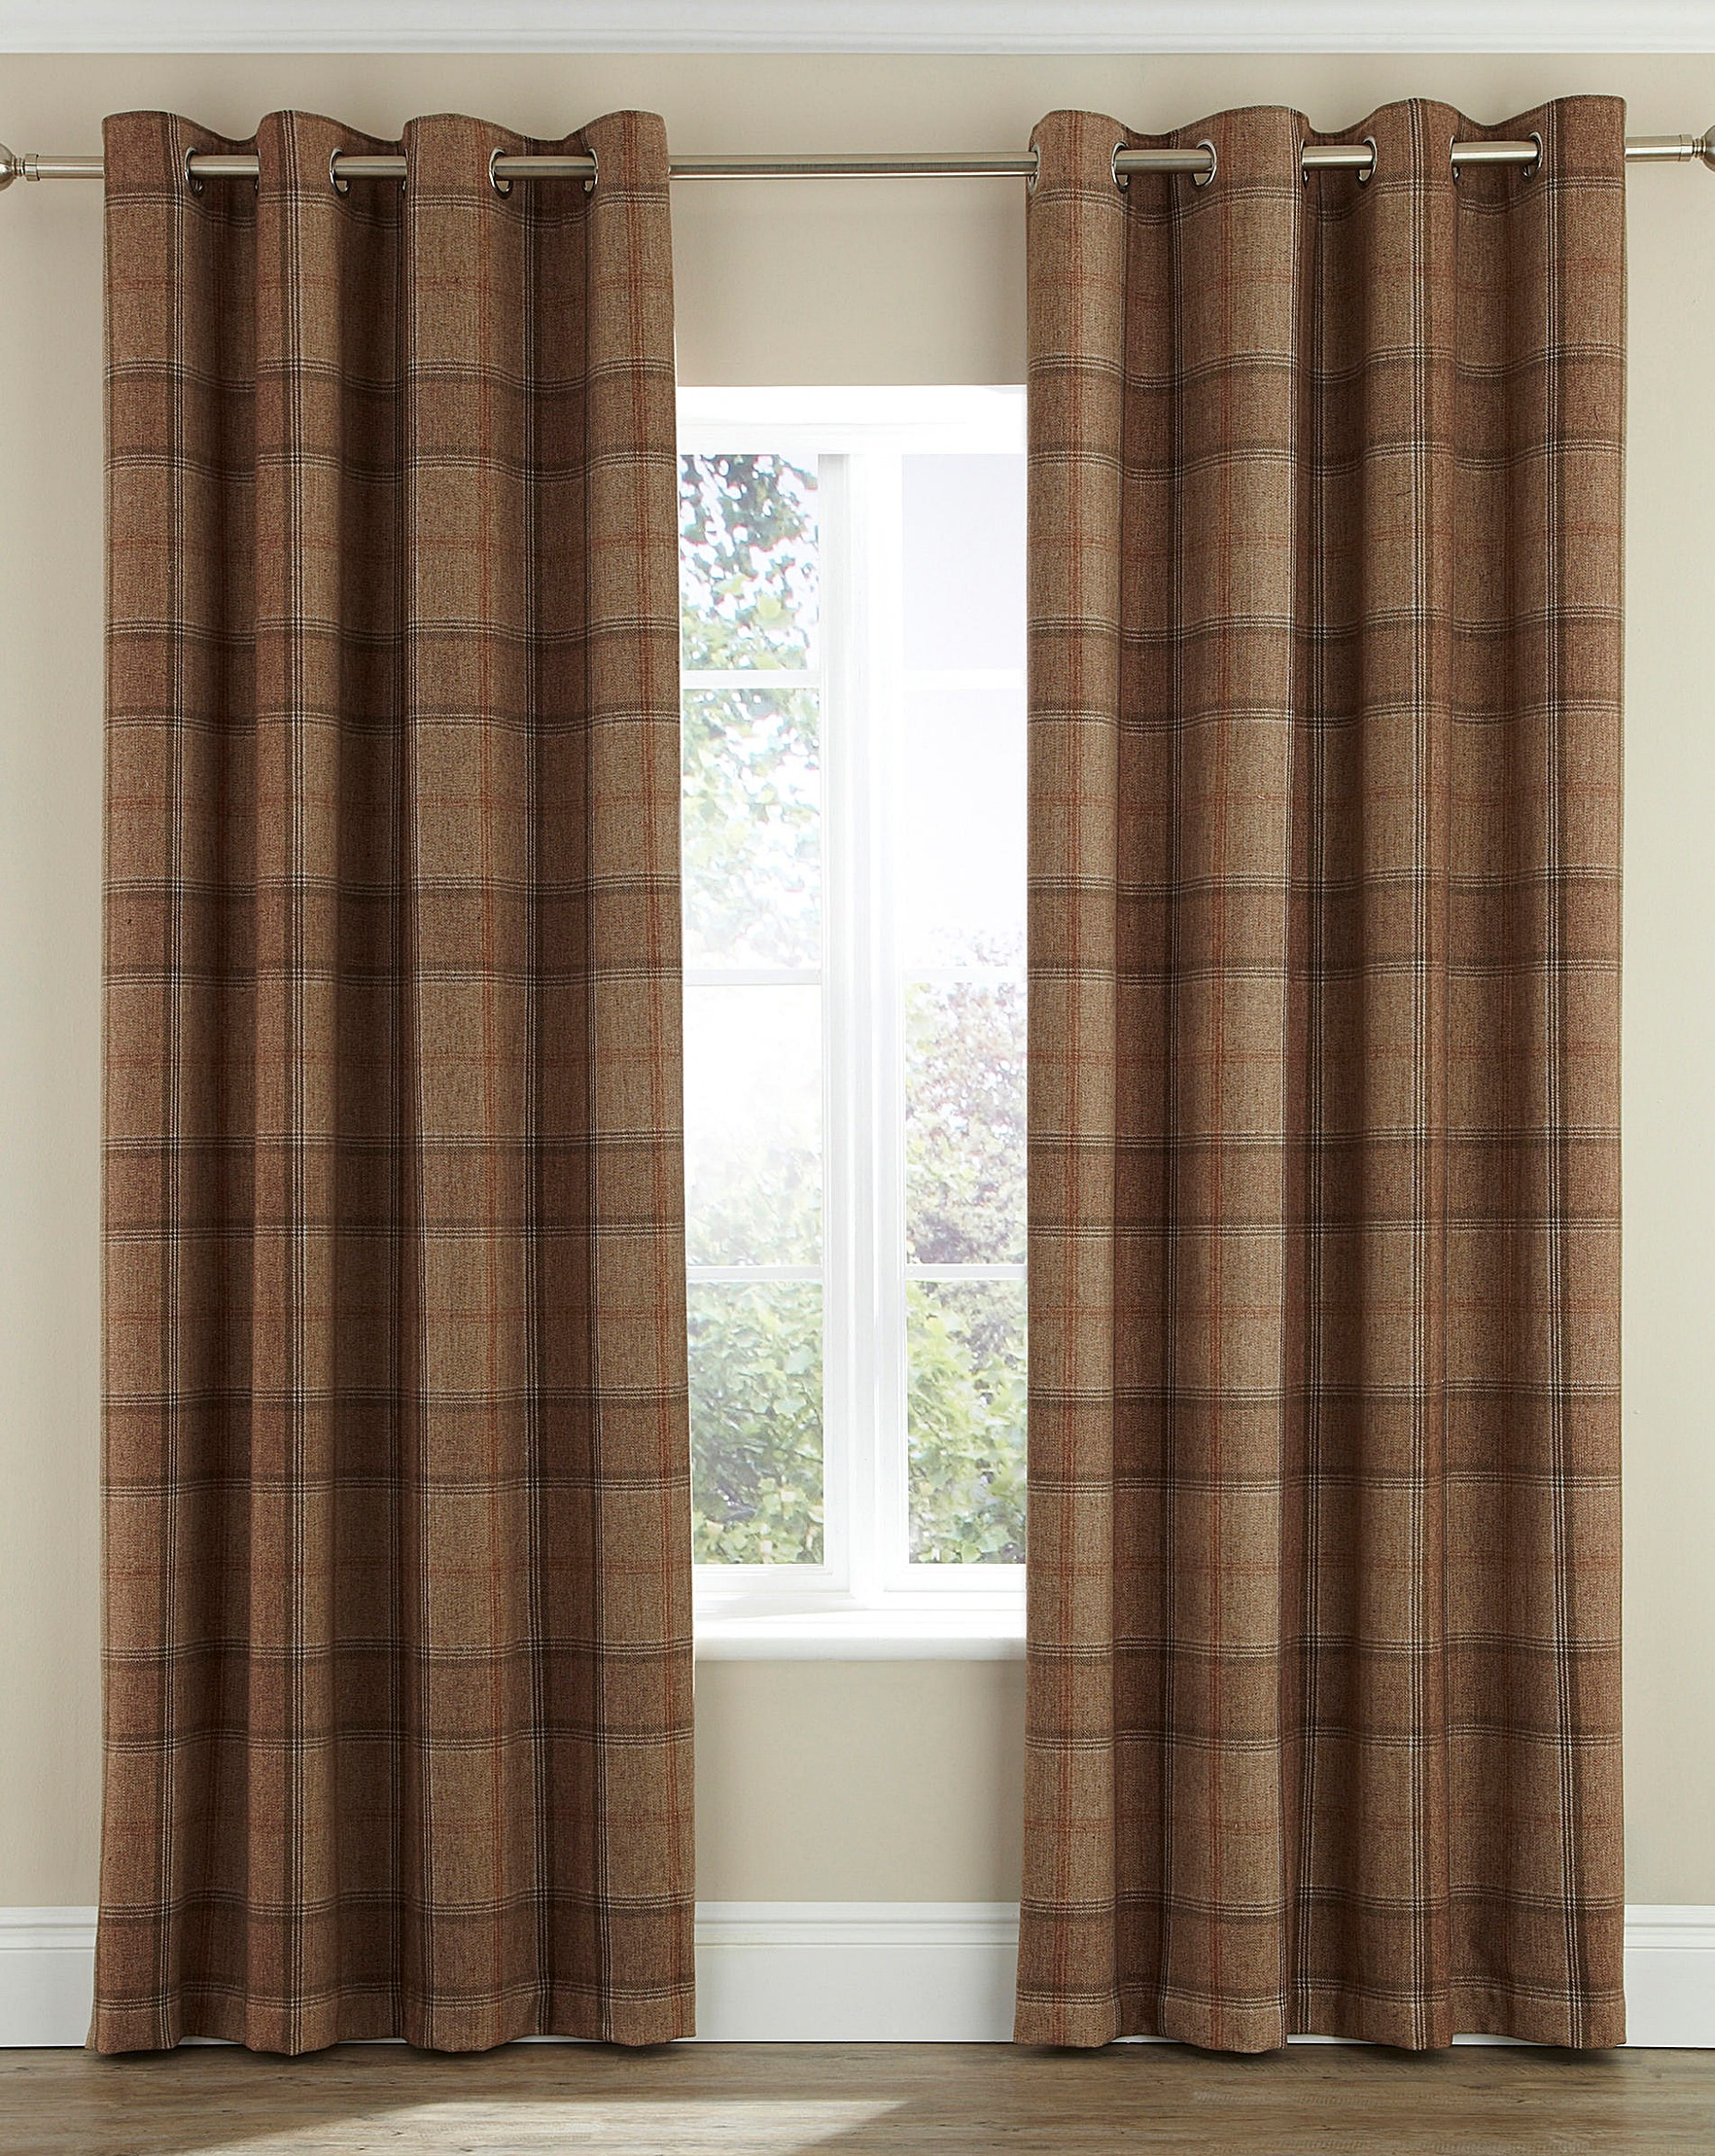 hallam d curtains lined product j show shop eyelet details damask williams action